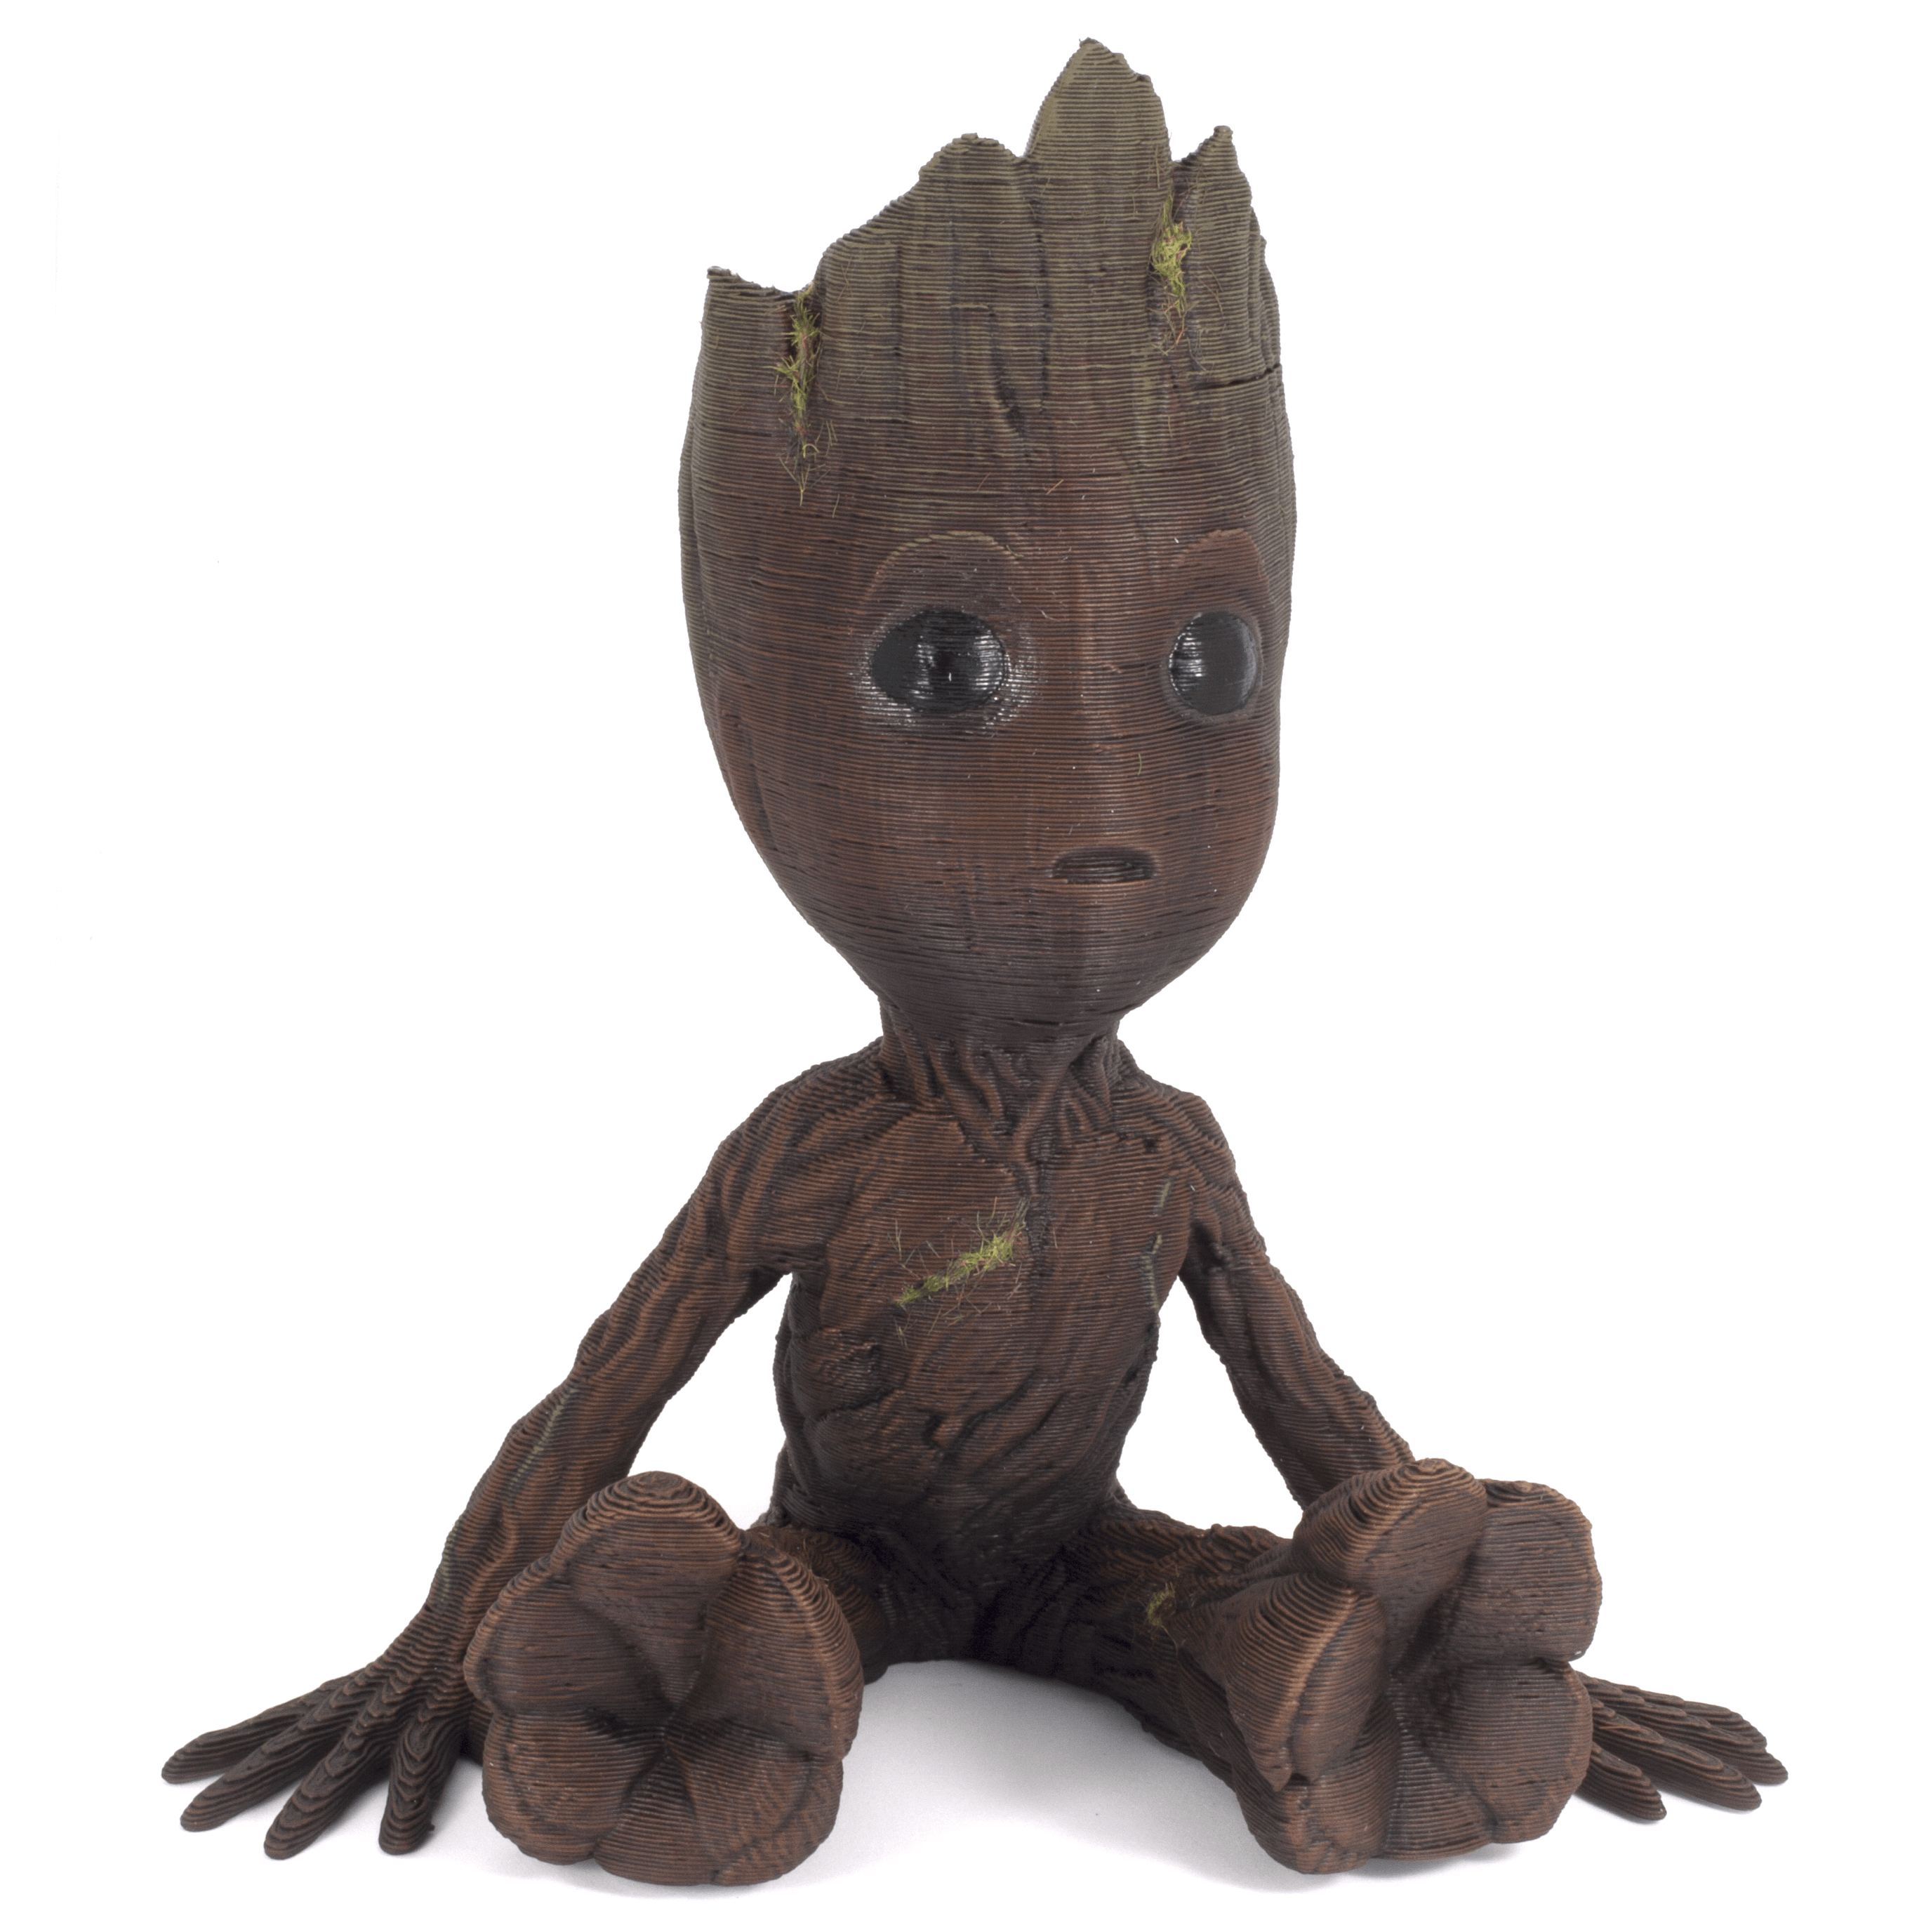 3D Printed Groot model